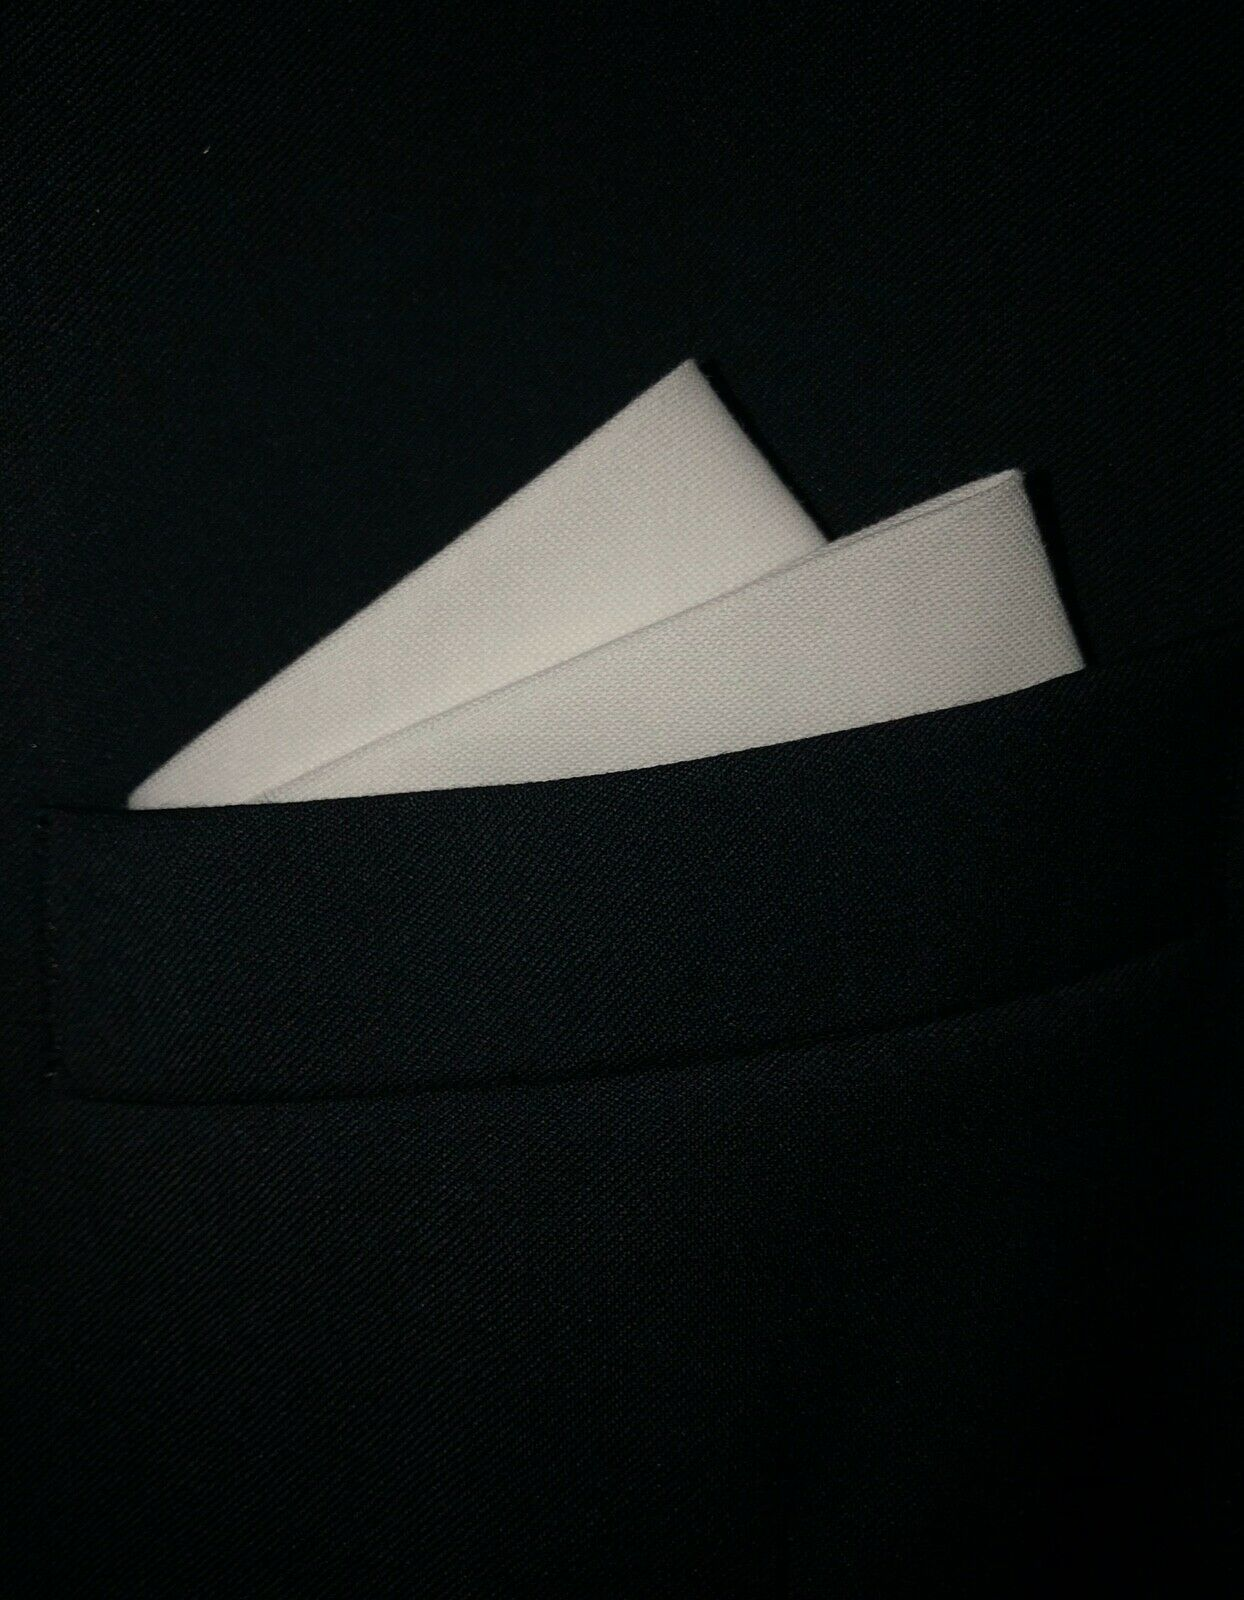 Pat Styles POCKET SQUARE White 2 point Wing Style - pre-folded & sewn - Slips in